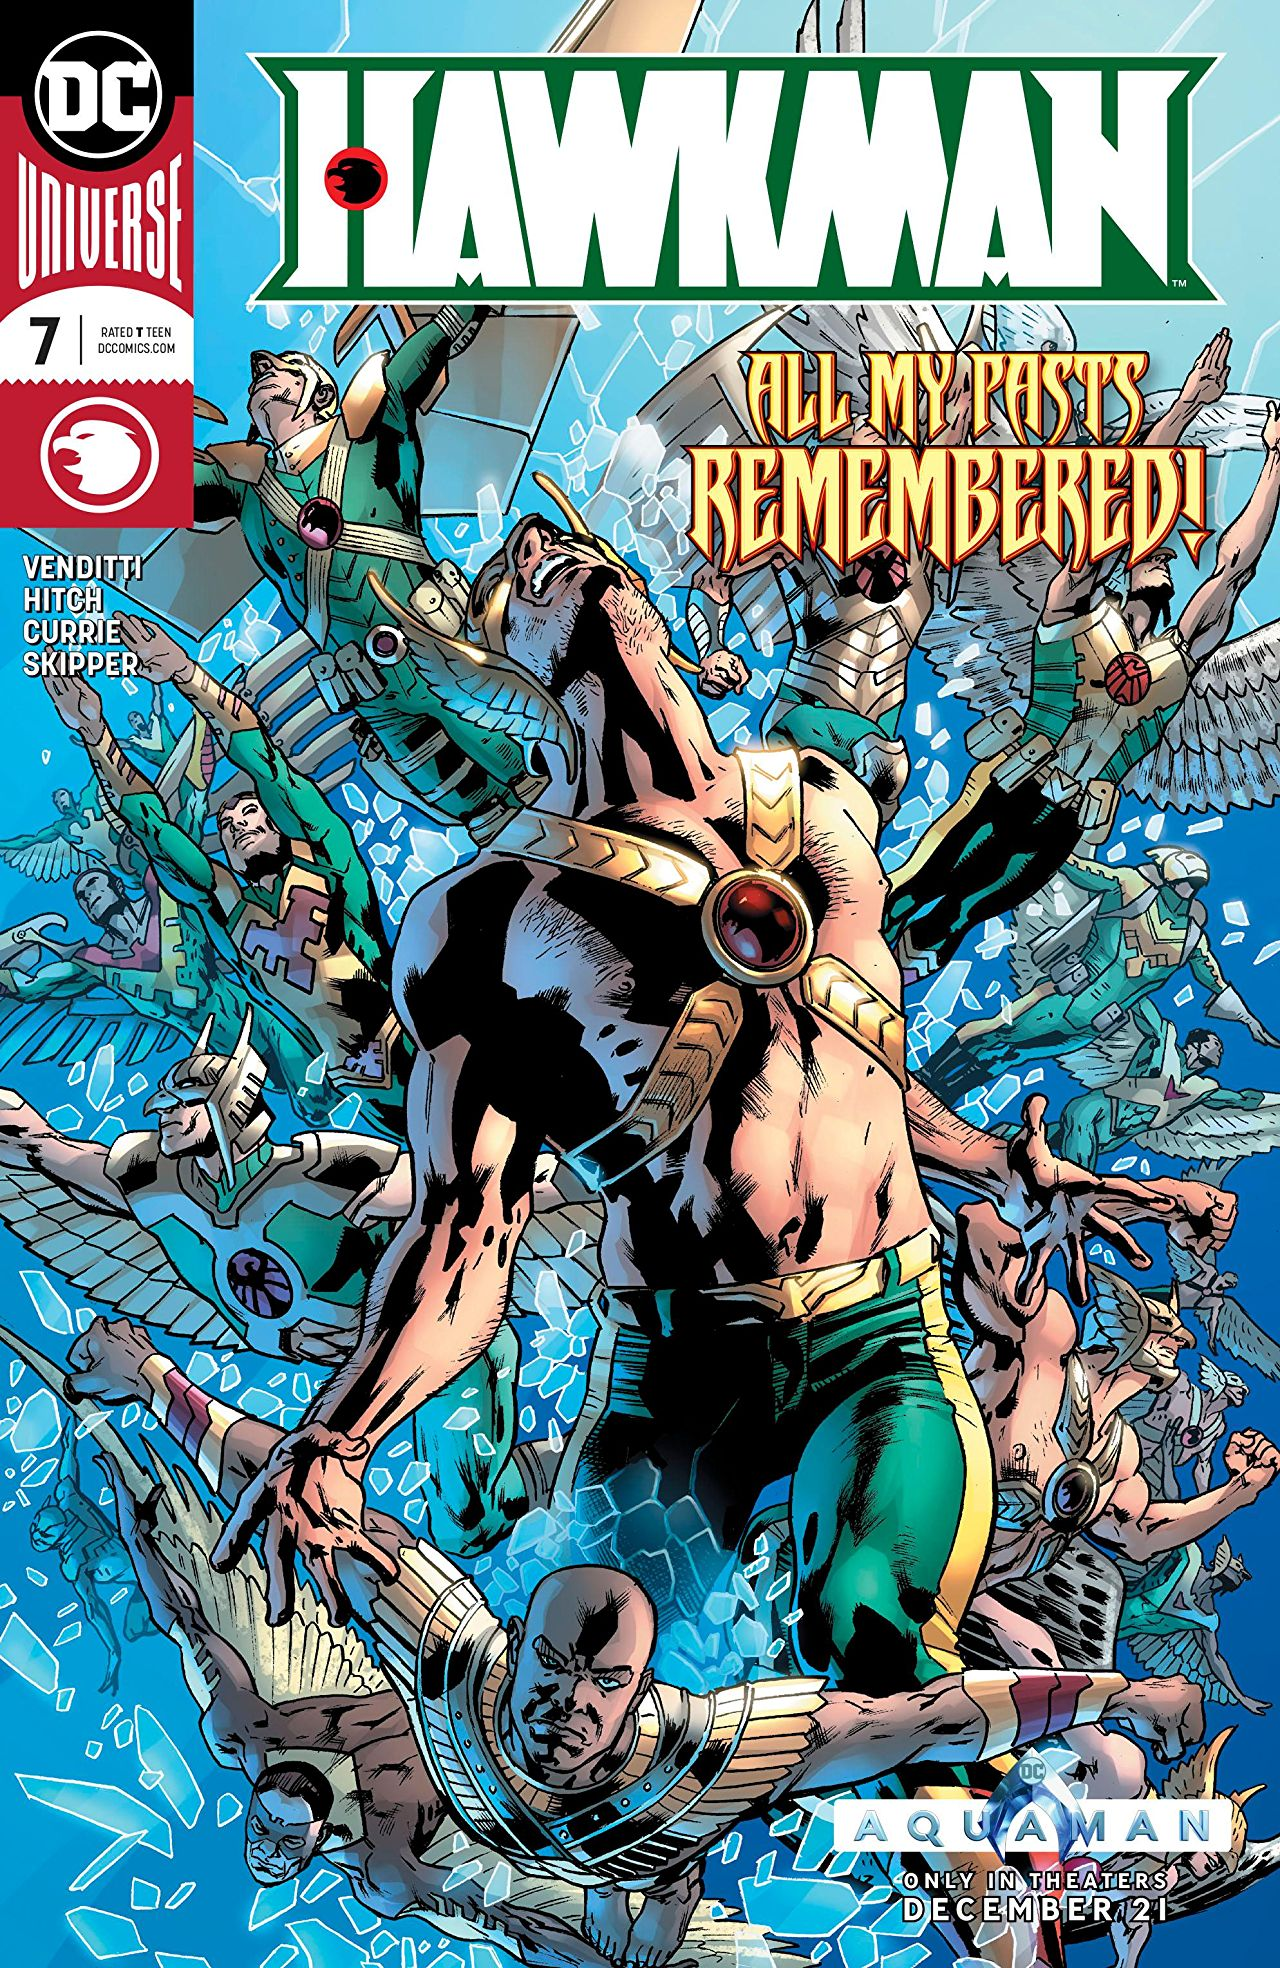 Hawkman #7 review: The First Life of Hawkman